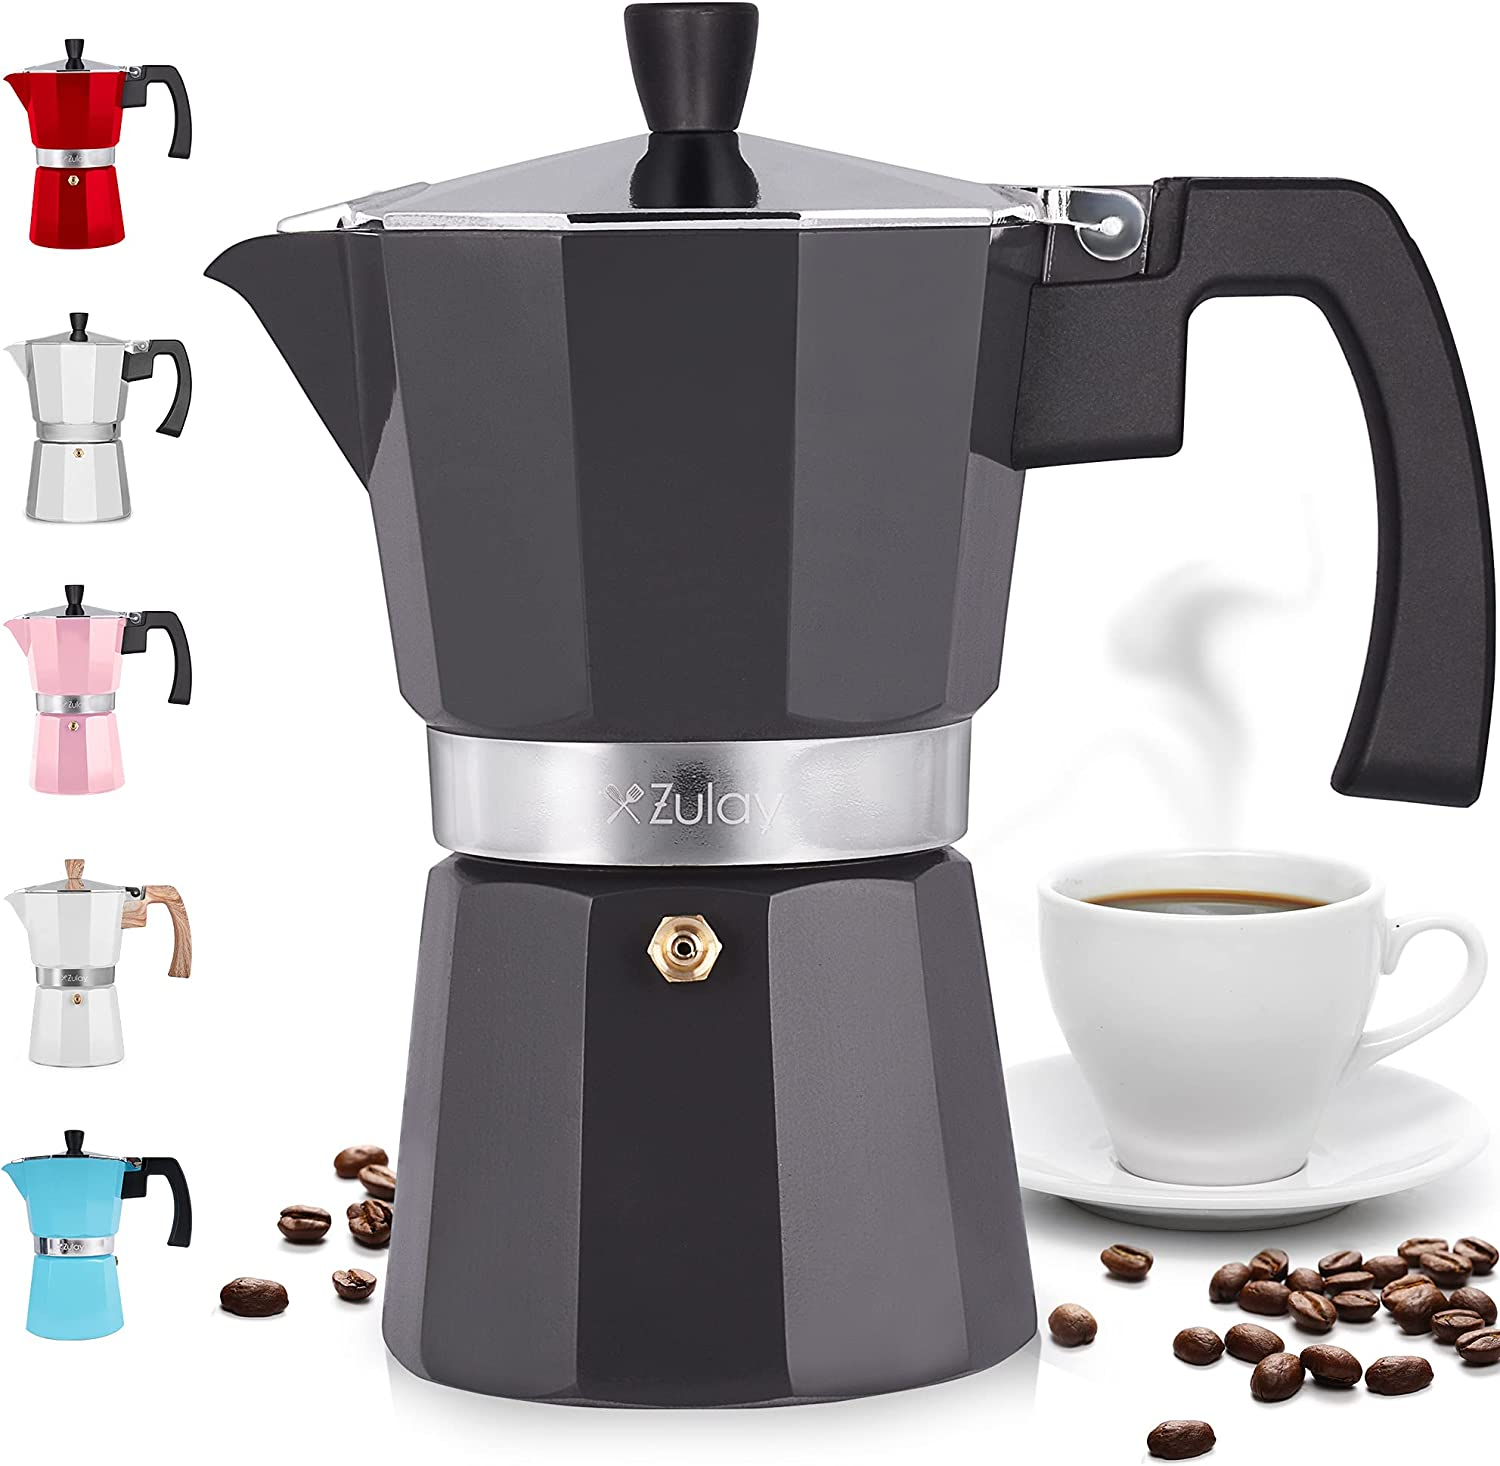 Zulay Classic Stovetop Max 41% OFF Espresso Maker for Strong Great SALENEW very popular! Flavored